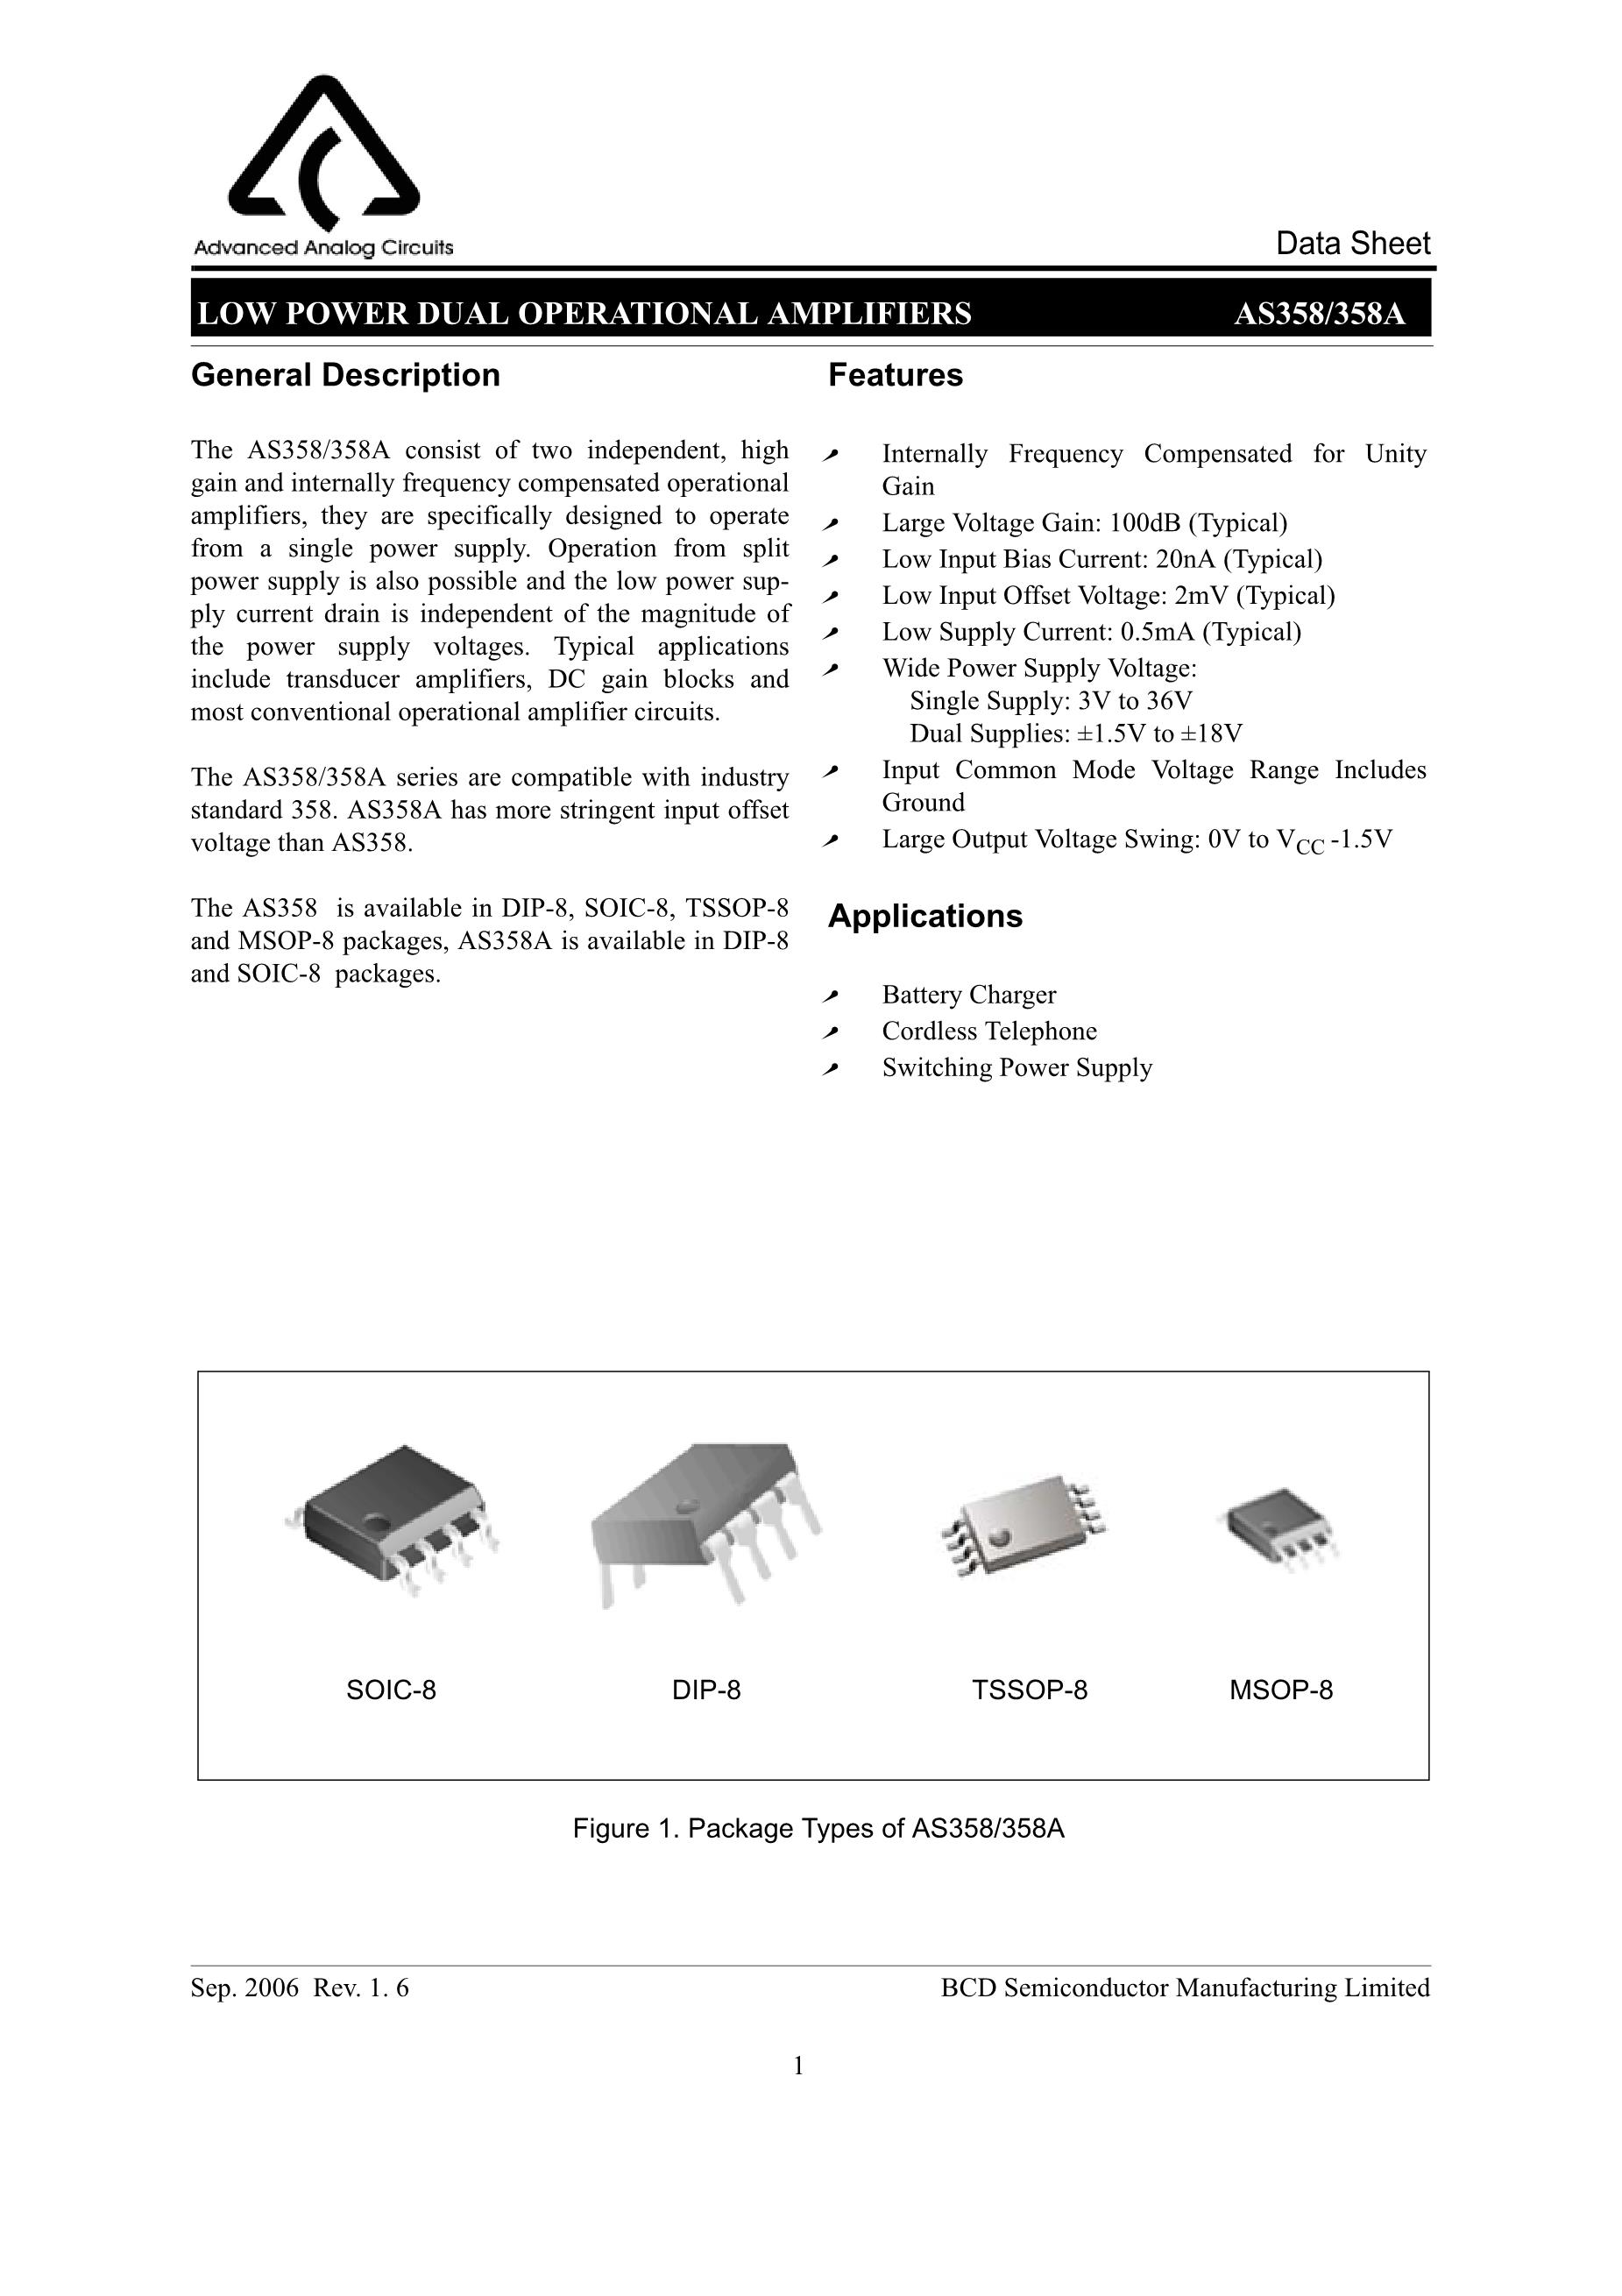 AS3527A FCT T's pdf picture 1